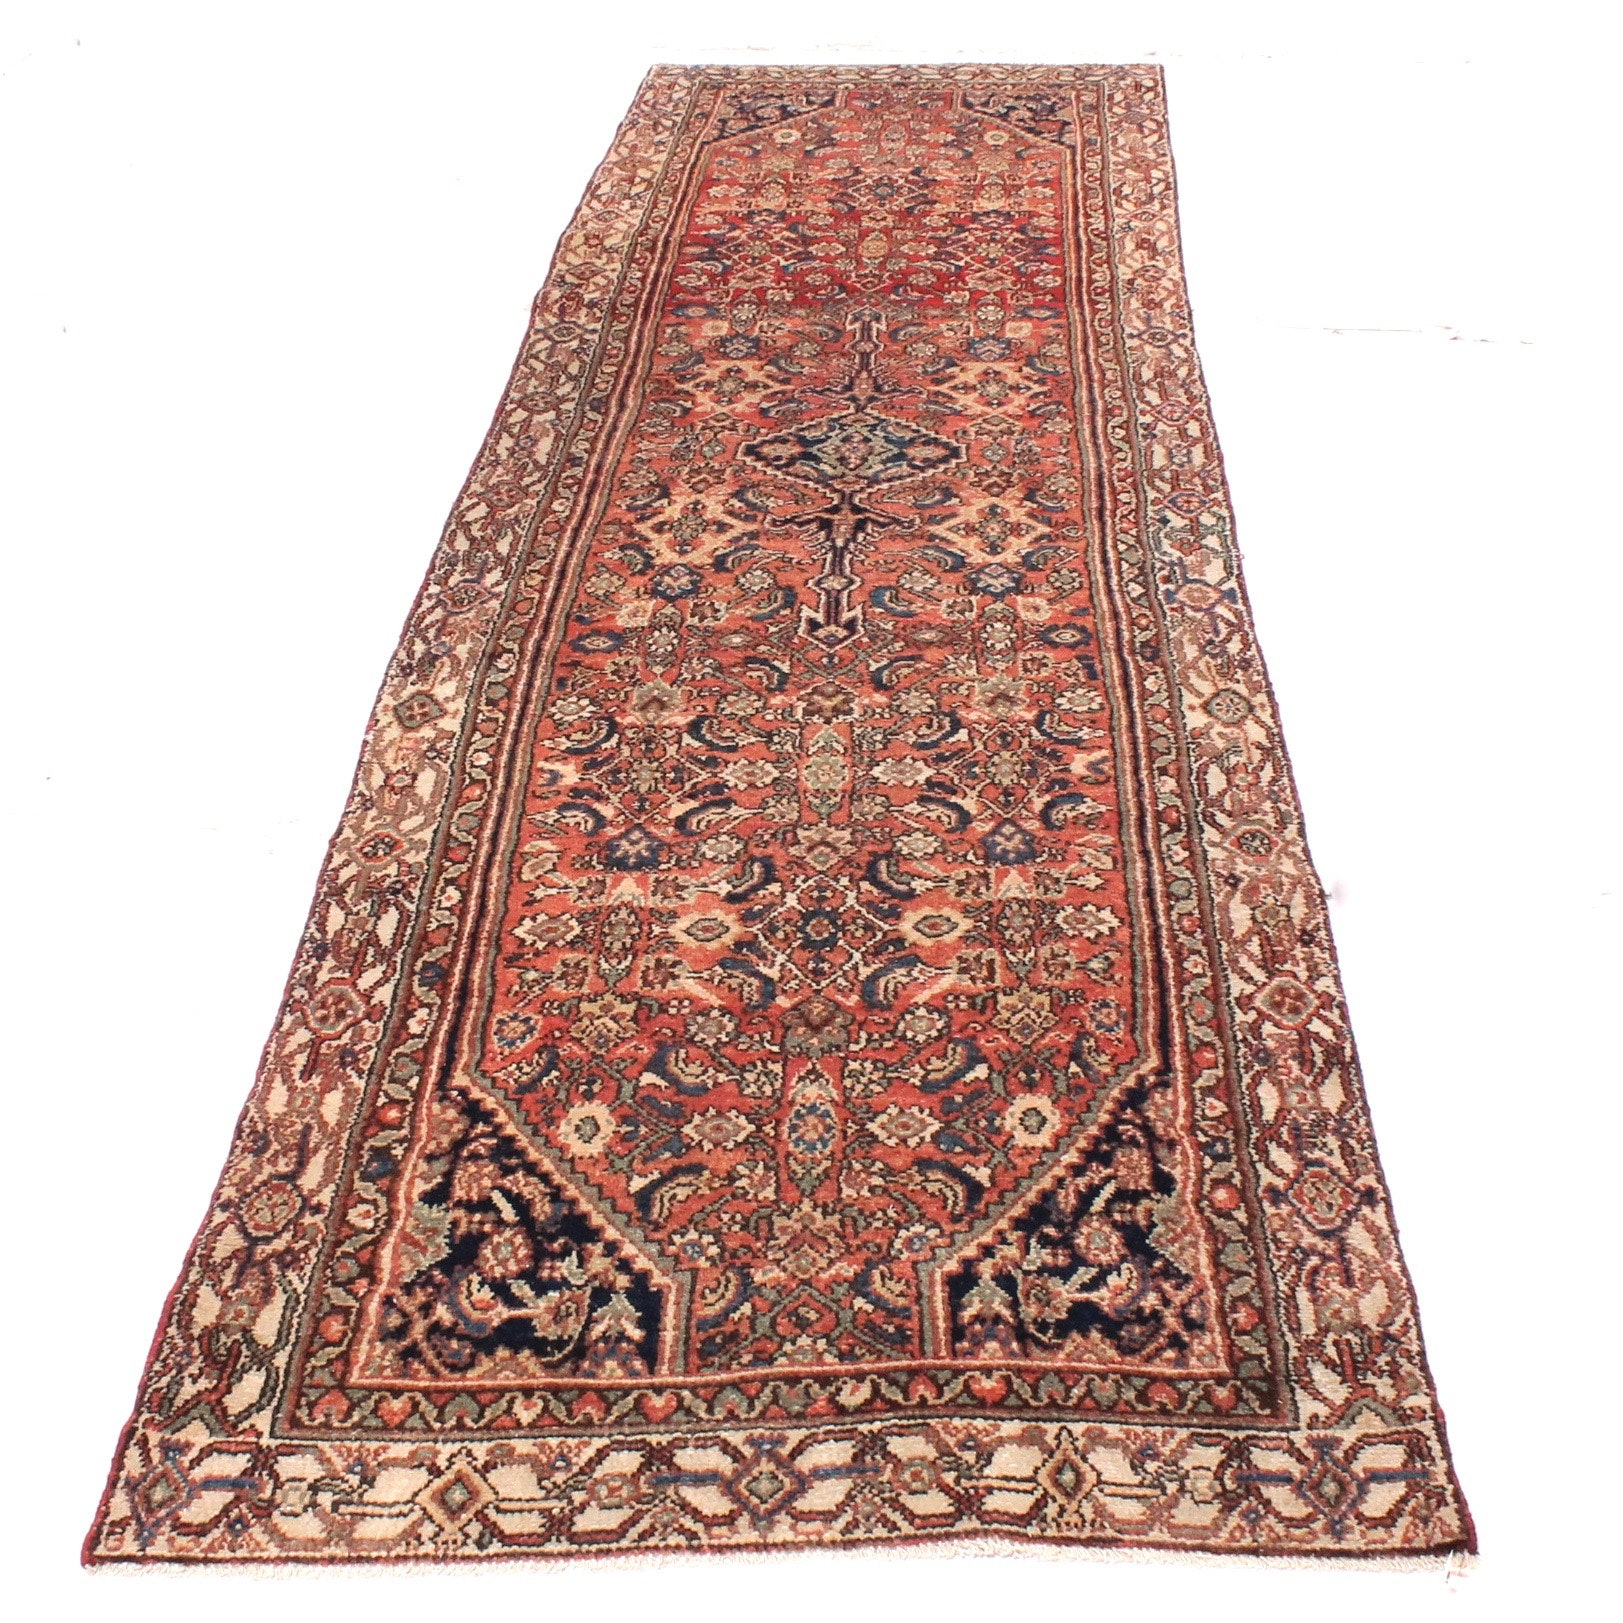 3' x 13' Vintage Hand-Knotted Persian Malayer Sarouk Runner